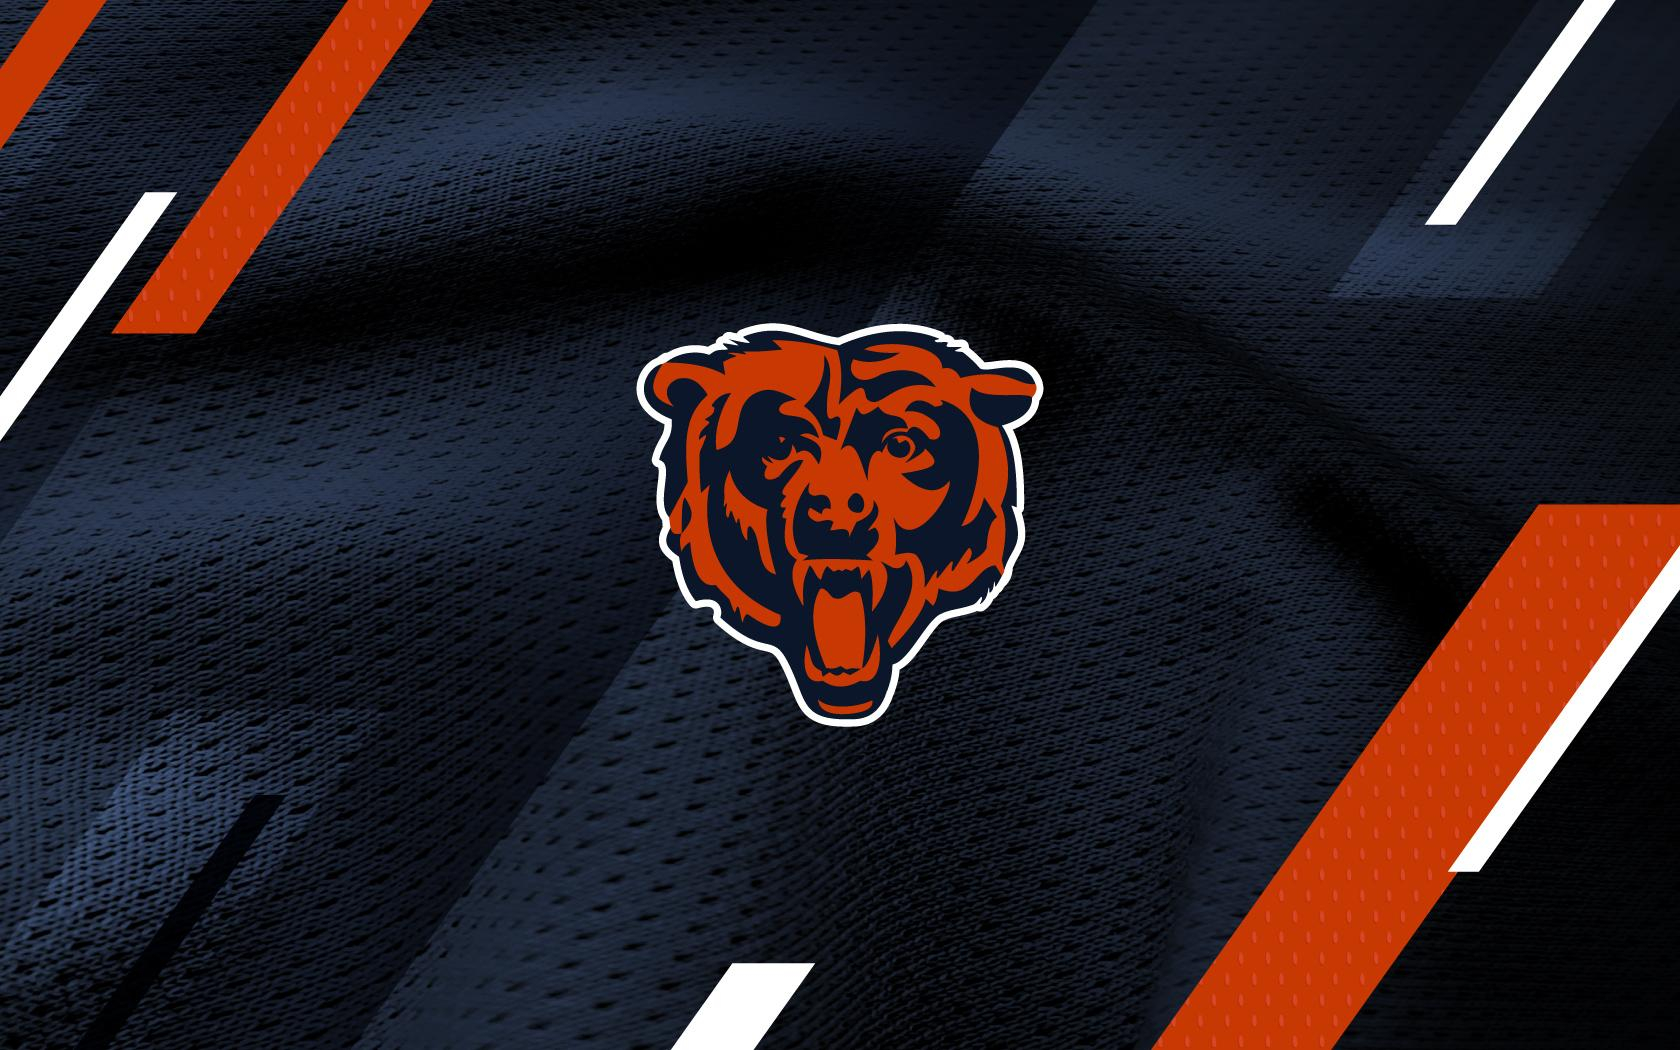 Chicago Bears 2019 Wallpapers Wallpaper Cave